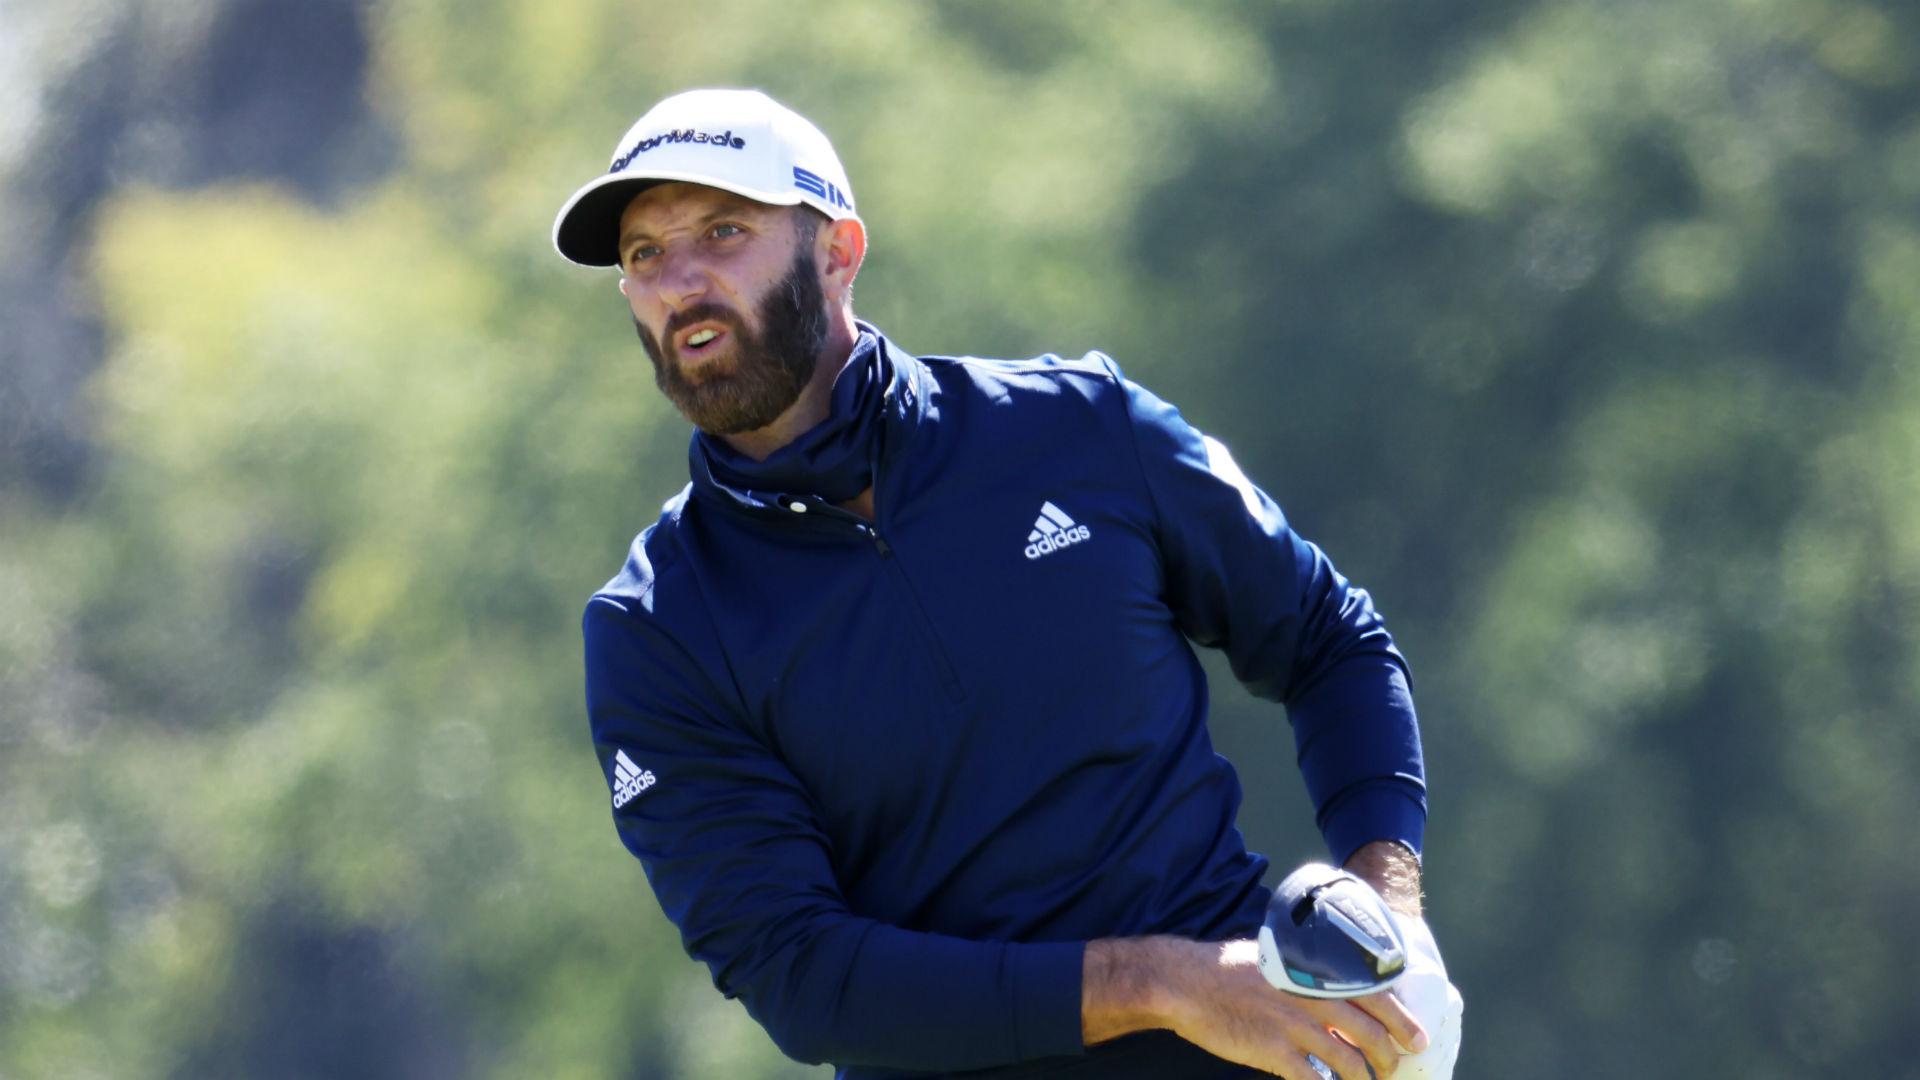 Dustin Johnson withdraws from CJ Cup after positive coronavirus test